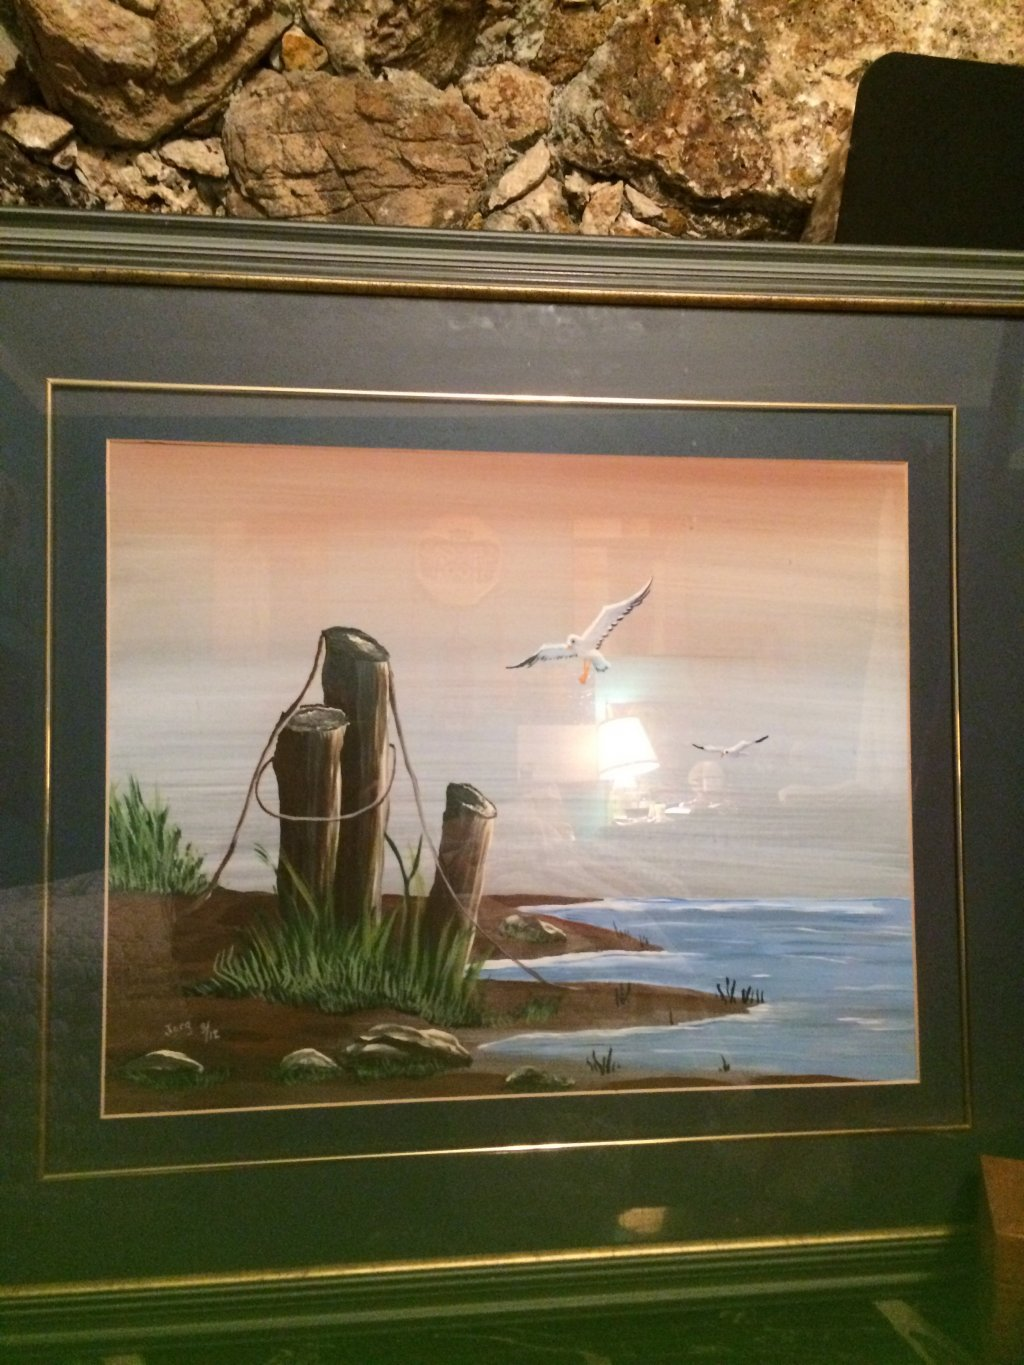 Framed Oil Painting Of Pei In Penticton Bc 【 Skaha Ca